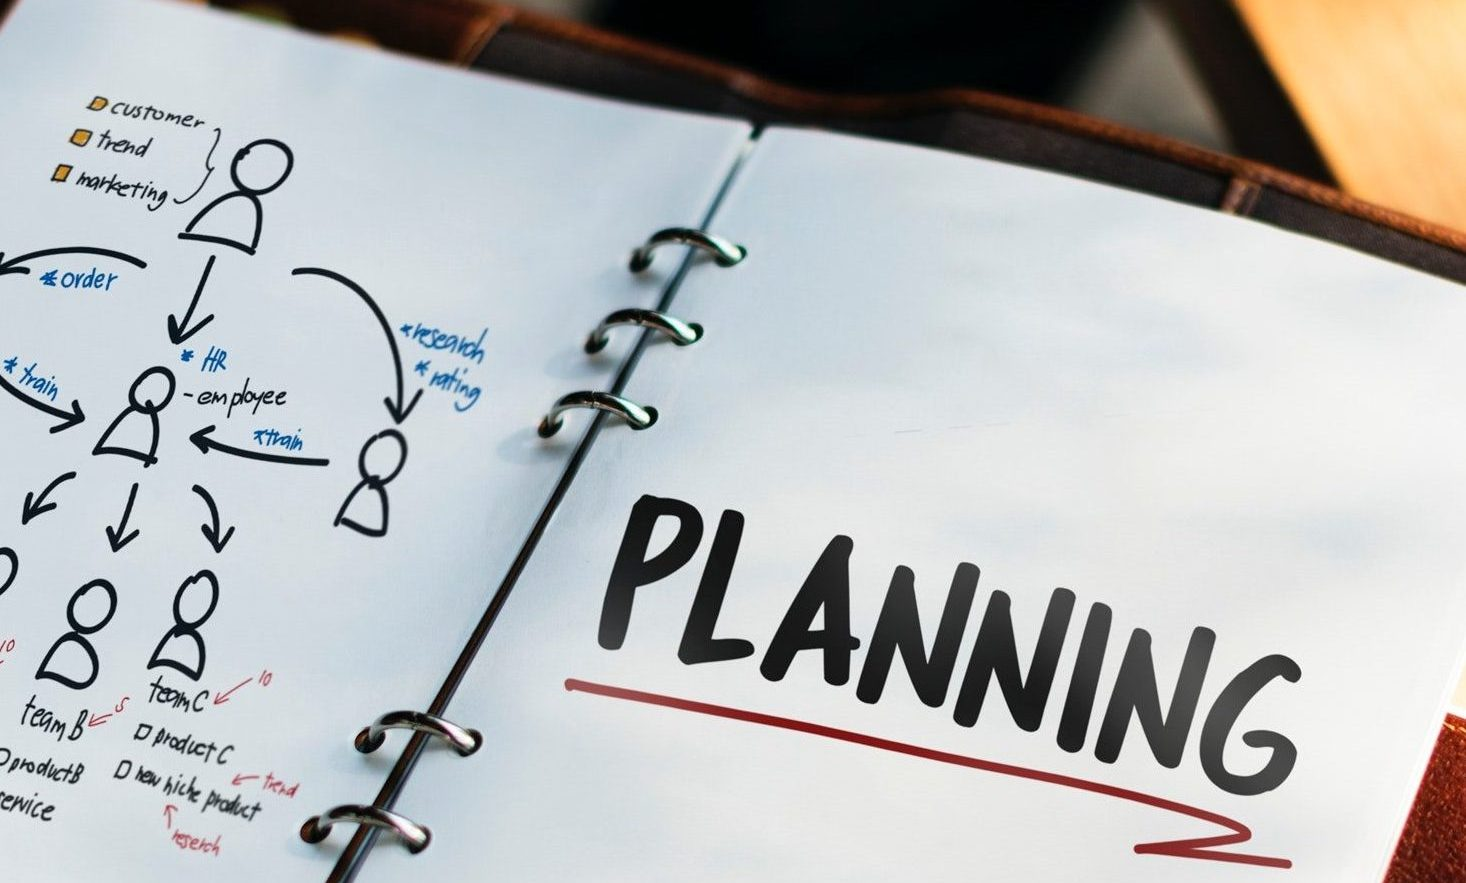 Diary with planning written in it